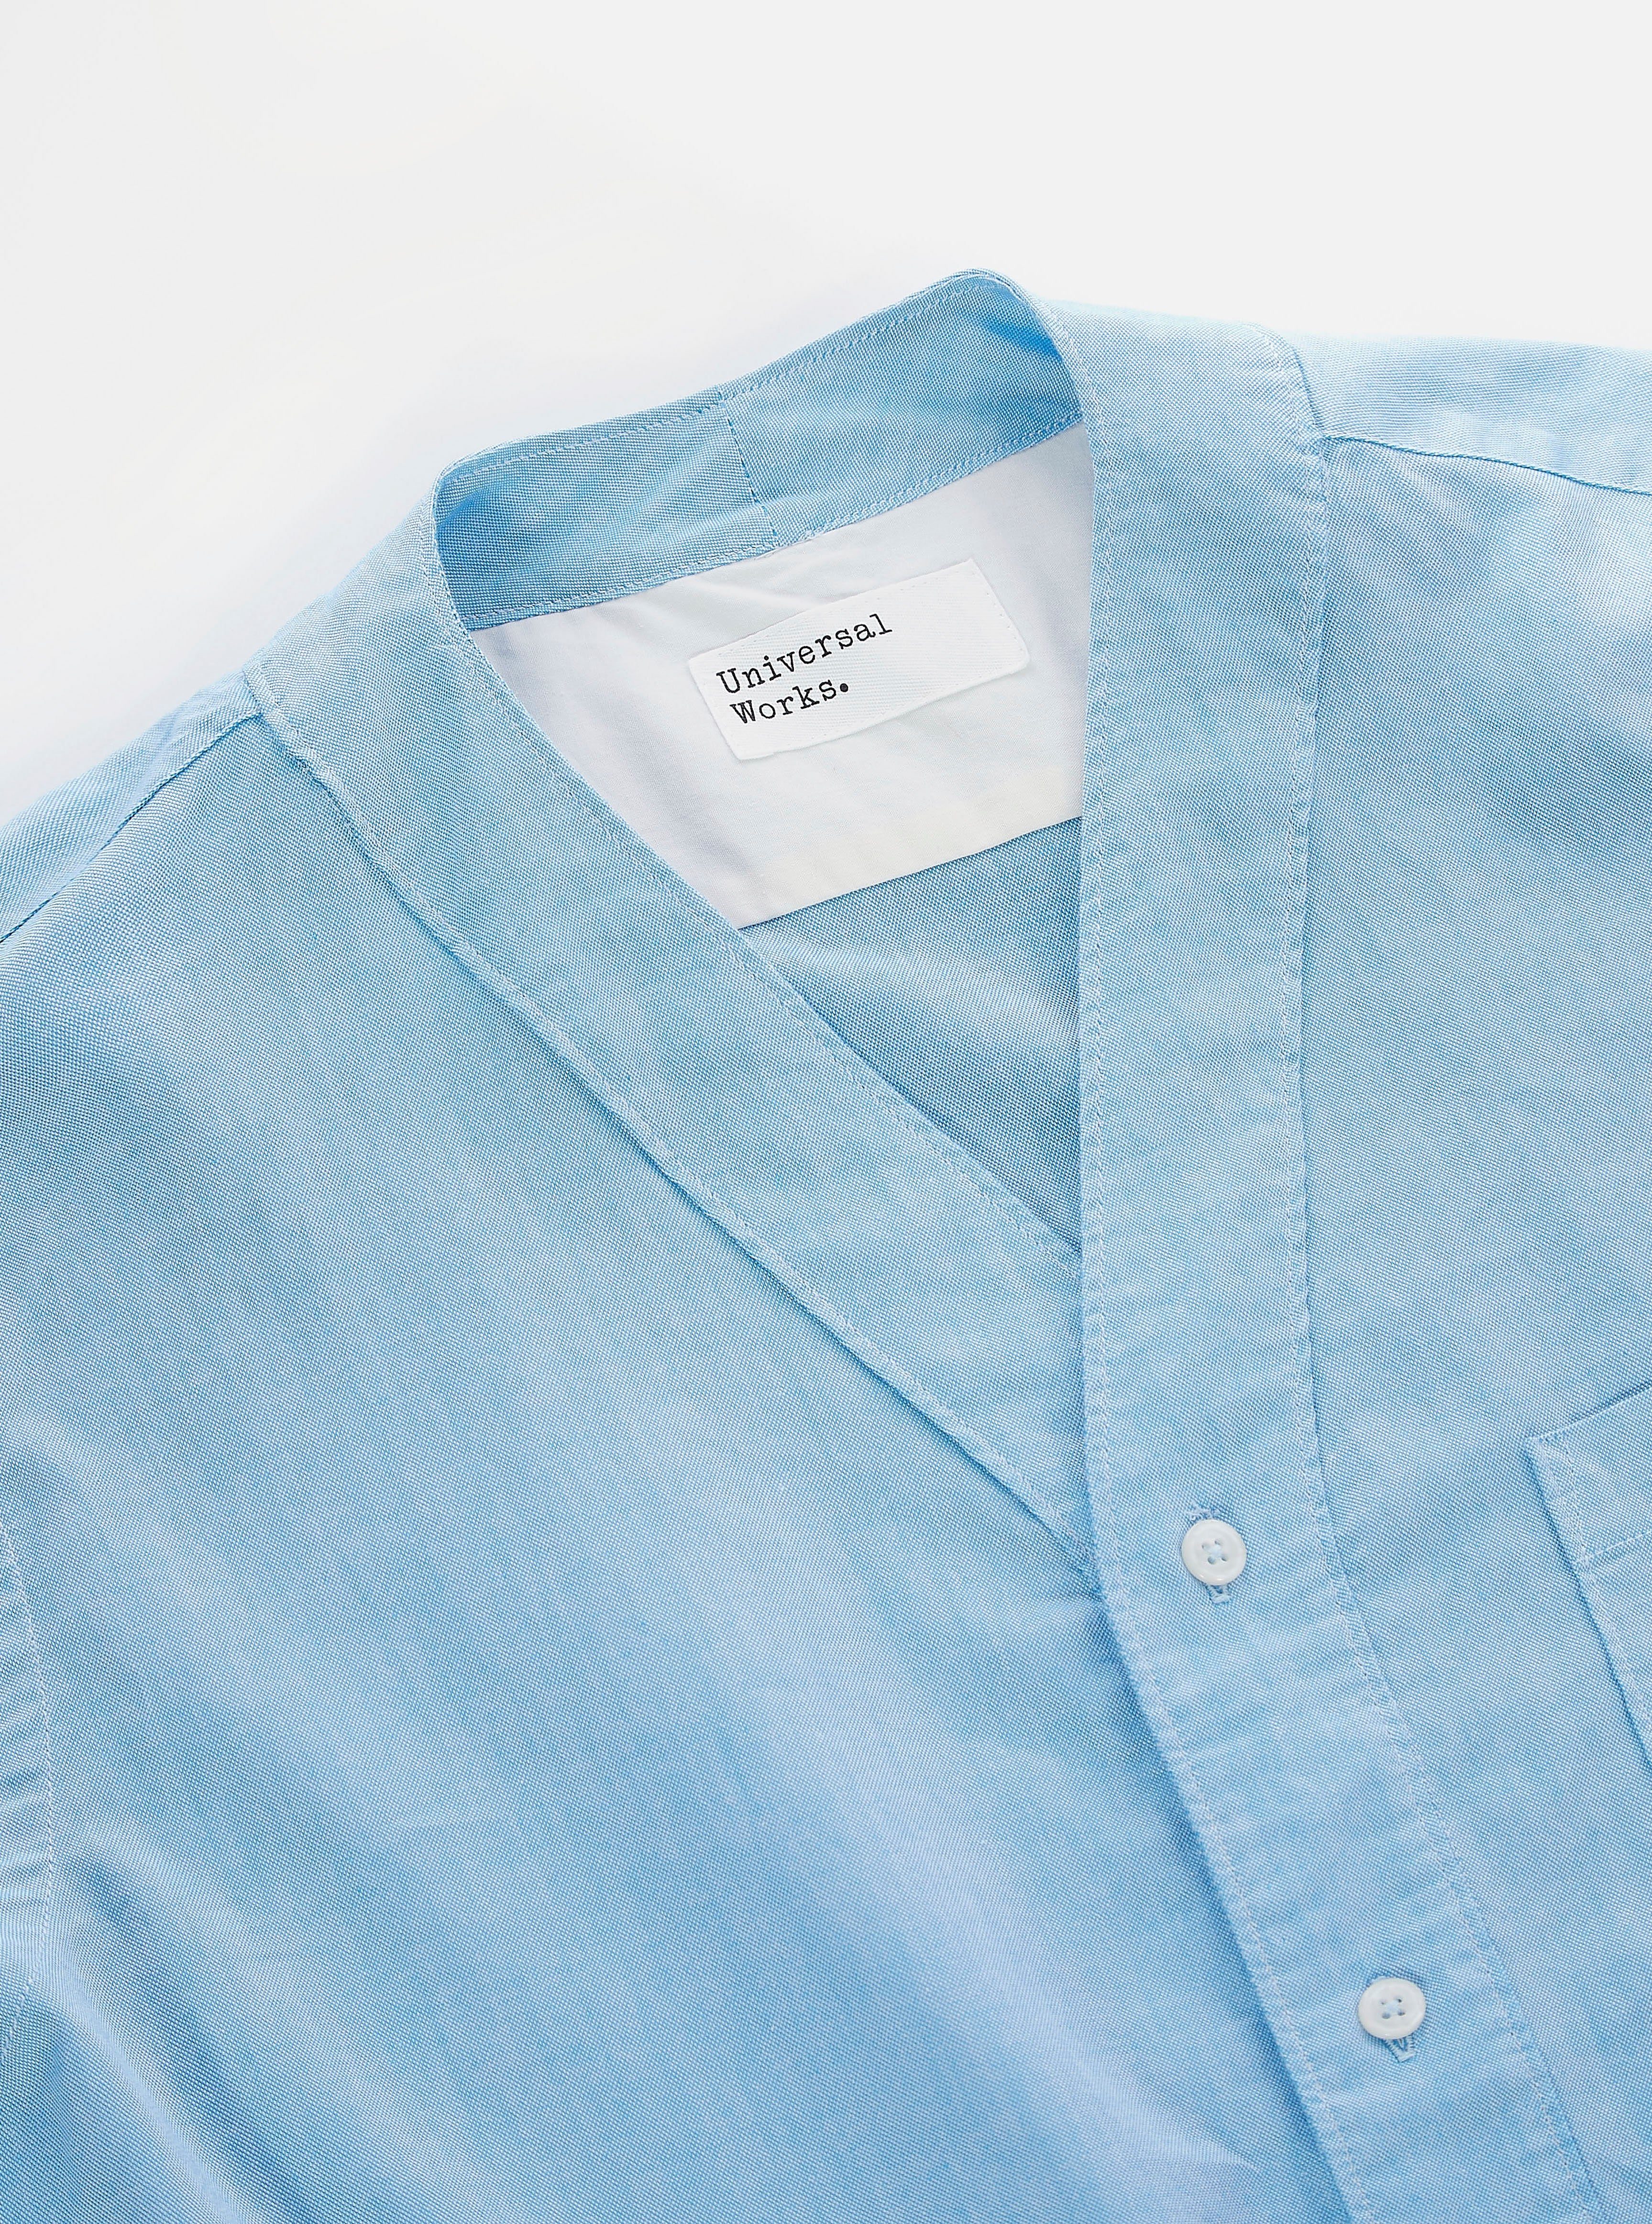 Universal Works S/S V Neck Shirt in Blue Organic Oxford